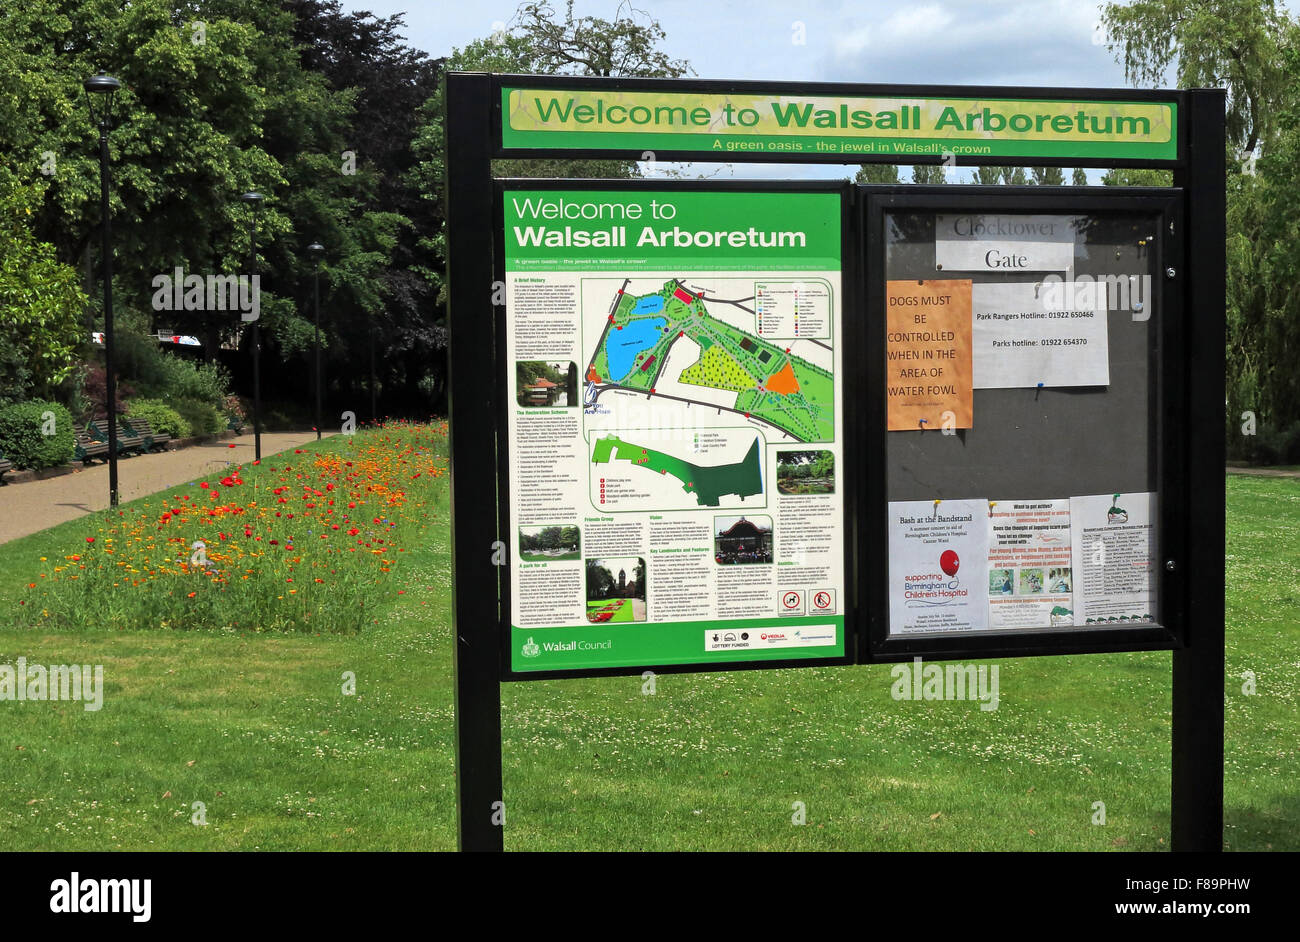 Welcome,to,English,Tree,Trees,collection,wild,flowers,public,space,Arbo,GB,UK,United,Kingdom,saddlers,sadler,MBC,Borough,Council,Victorian,park,park,entrance,clock,tower,lake,sign,flower,bed,town,map,info,information,Walsall Arboretum,West Midlands,Public spaces,Victoria Park,flower bed,GoTonySmith,West,Midlands,England,WS4,2BU,tourist,tourism,travel,to,Black,Country,Buy Pictures of,Buy Images Of,Lichfield St,WS4 2BU,Black Country,Walsall Black Country